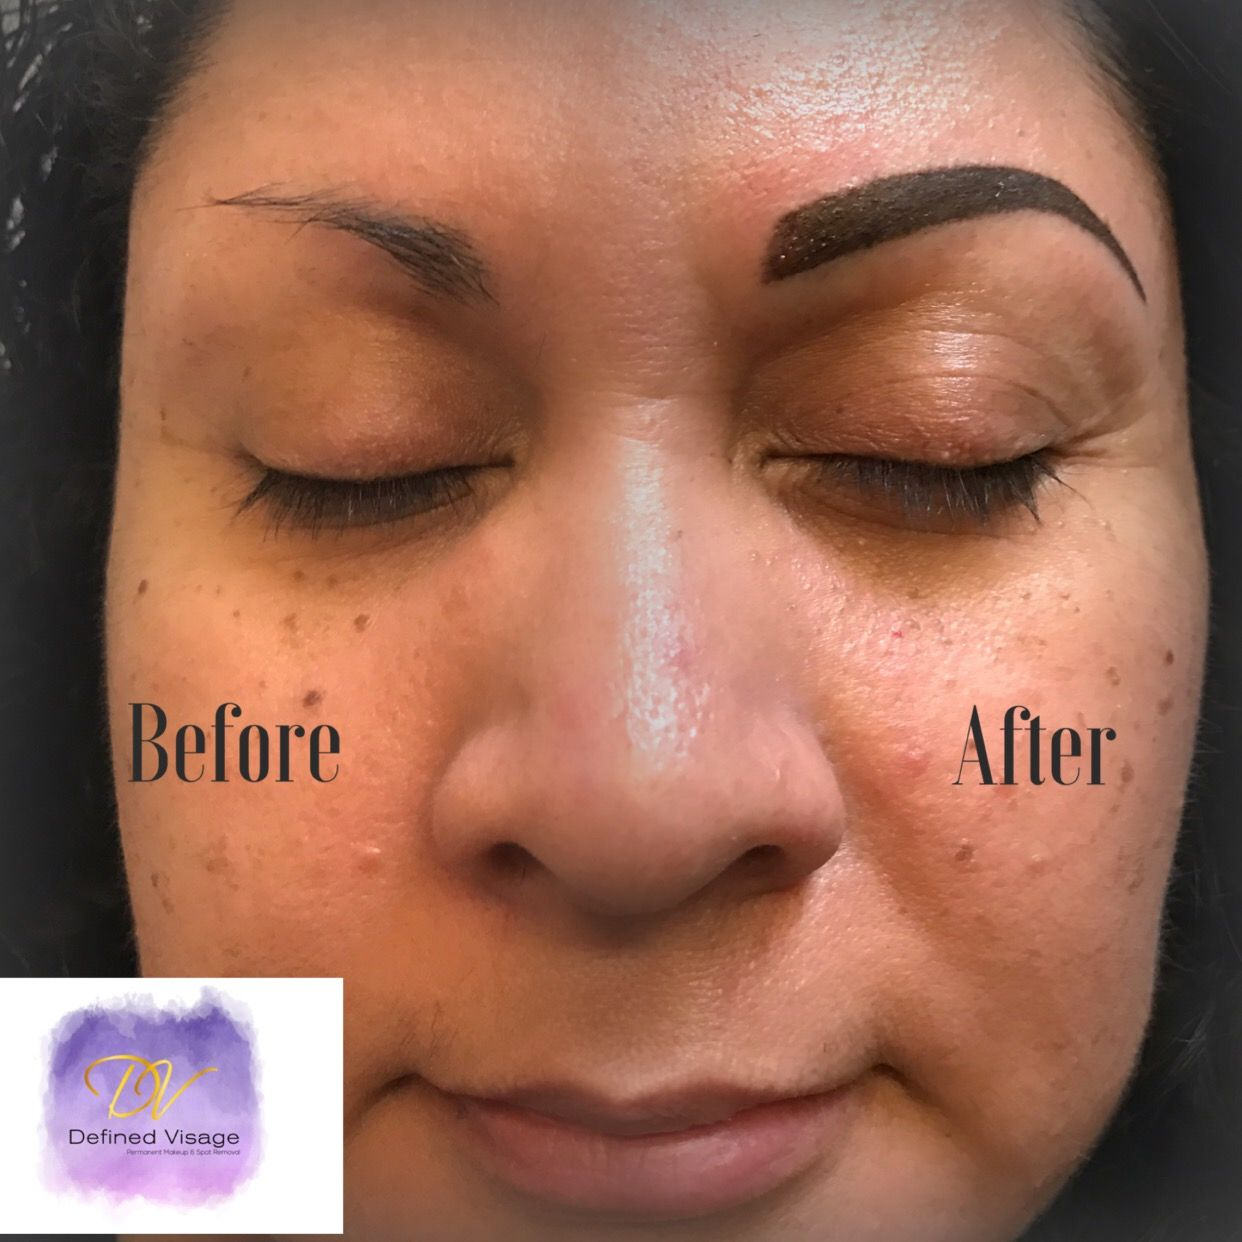 Pin by Defined Visage on Before & After Microblading